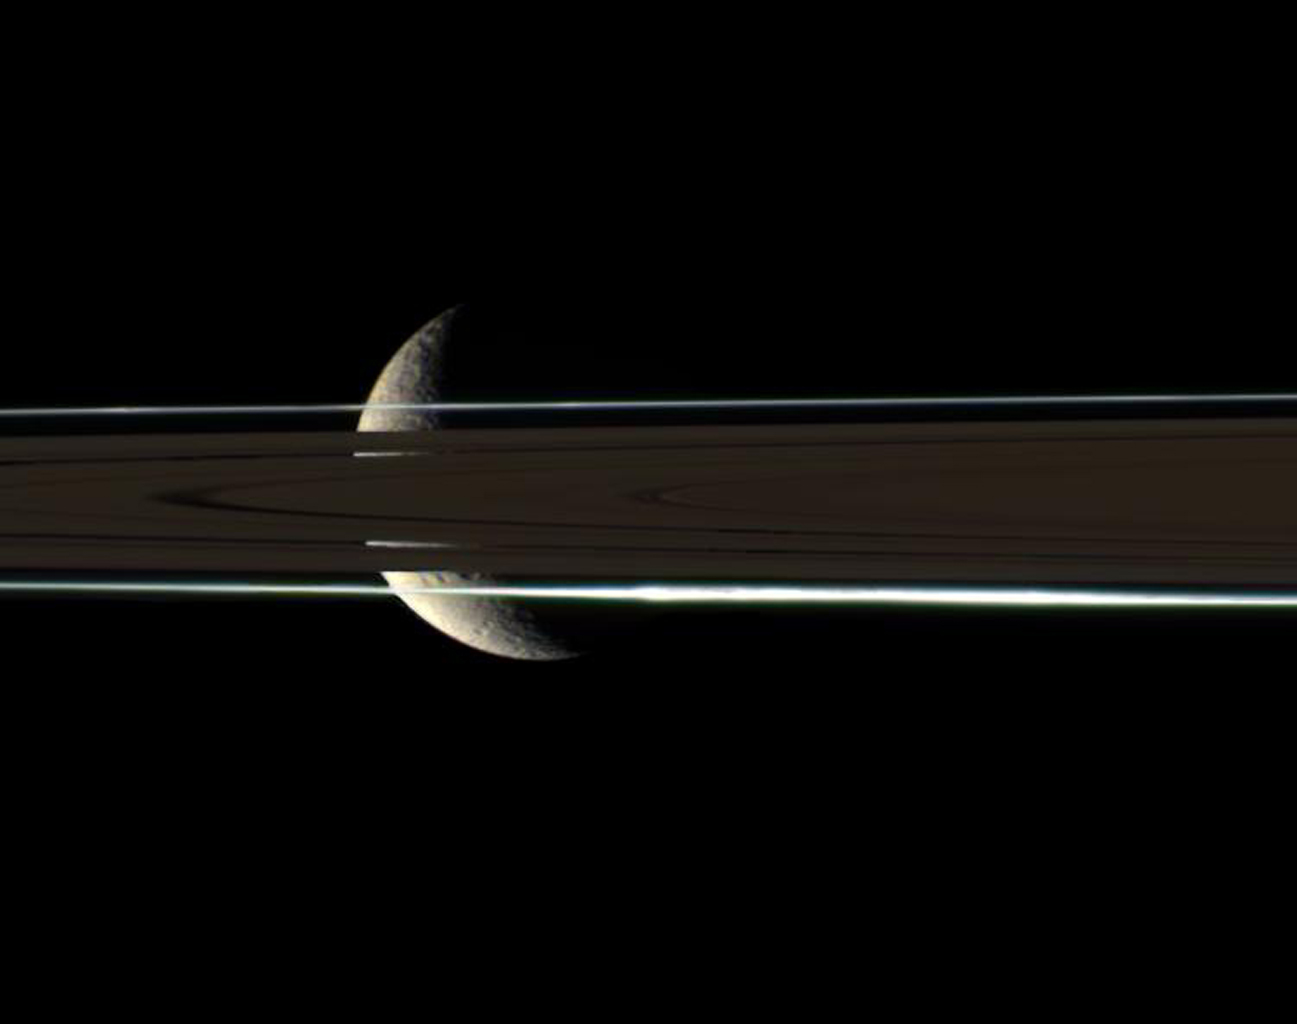 The rings cannot hide the ragged, icy crescent of Rhea, here imaged in color by NASA's Cassini spacecraft. The second-largest moon of Saturn shines brightly through gaps in the rings